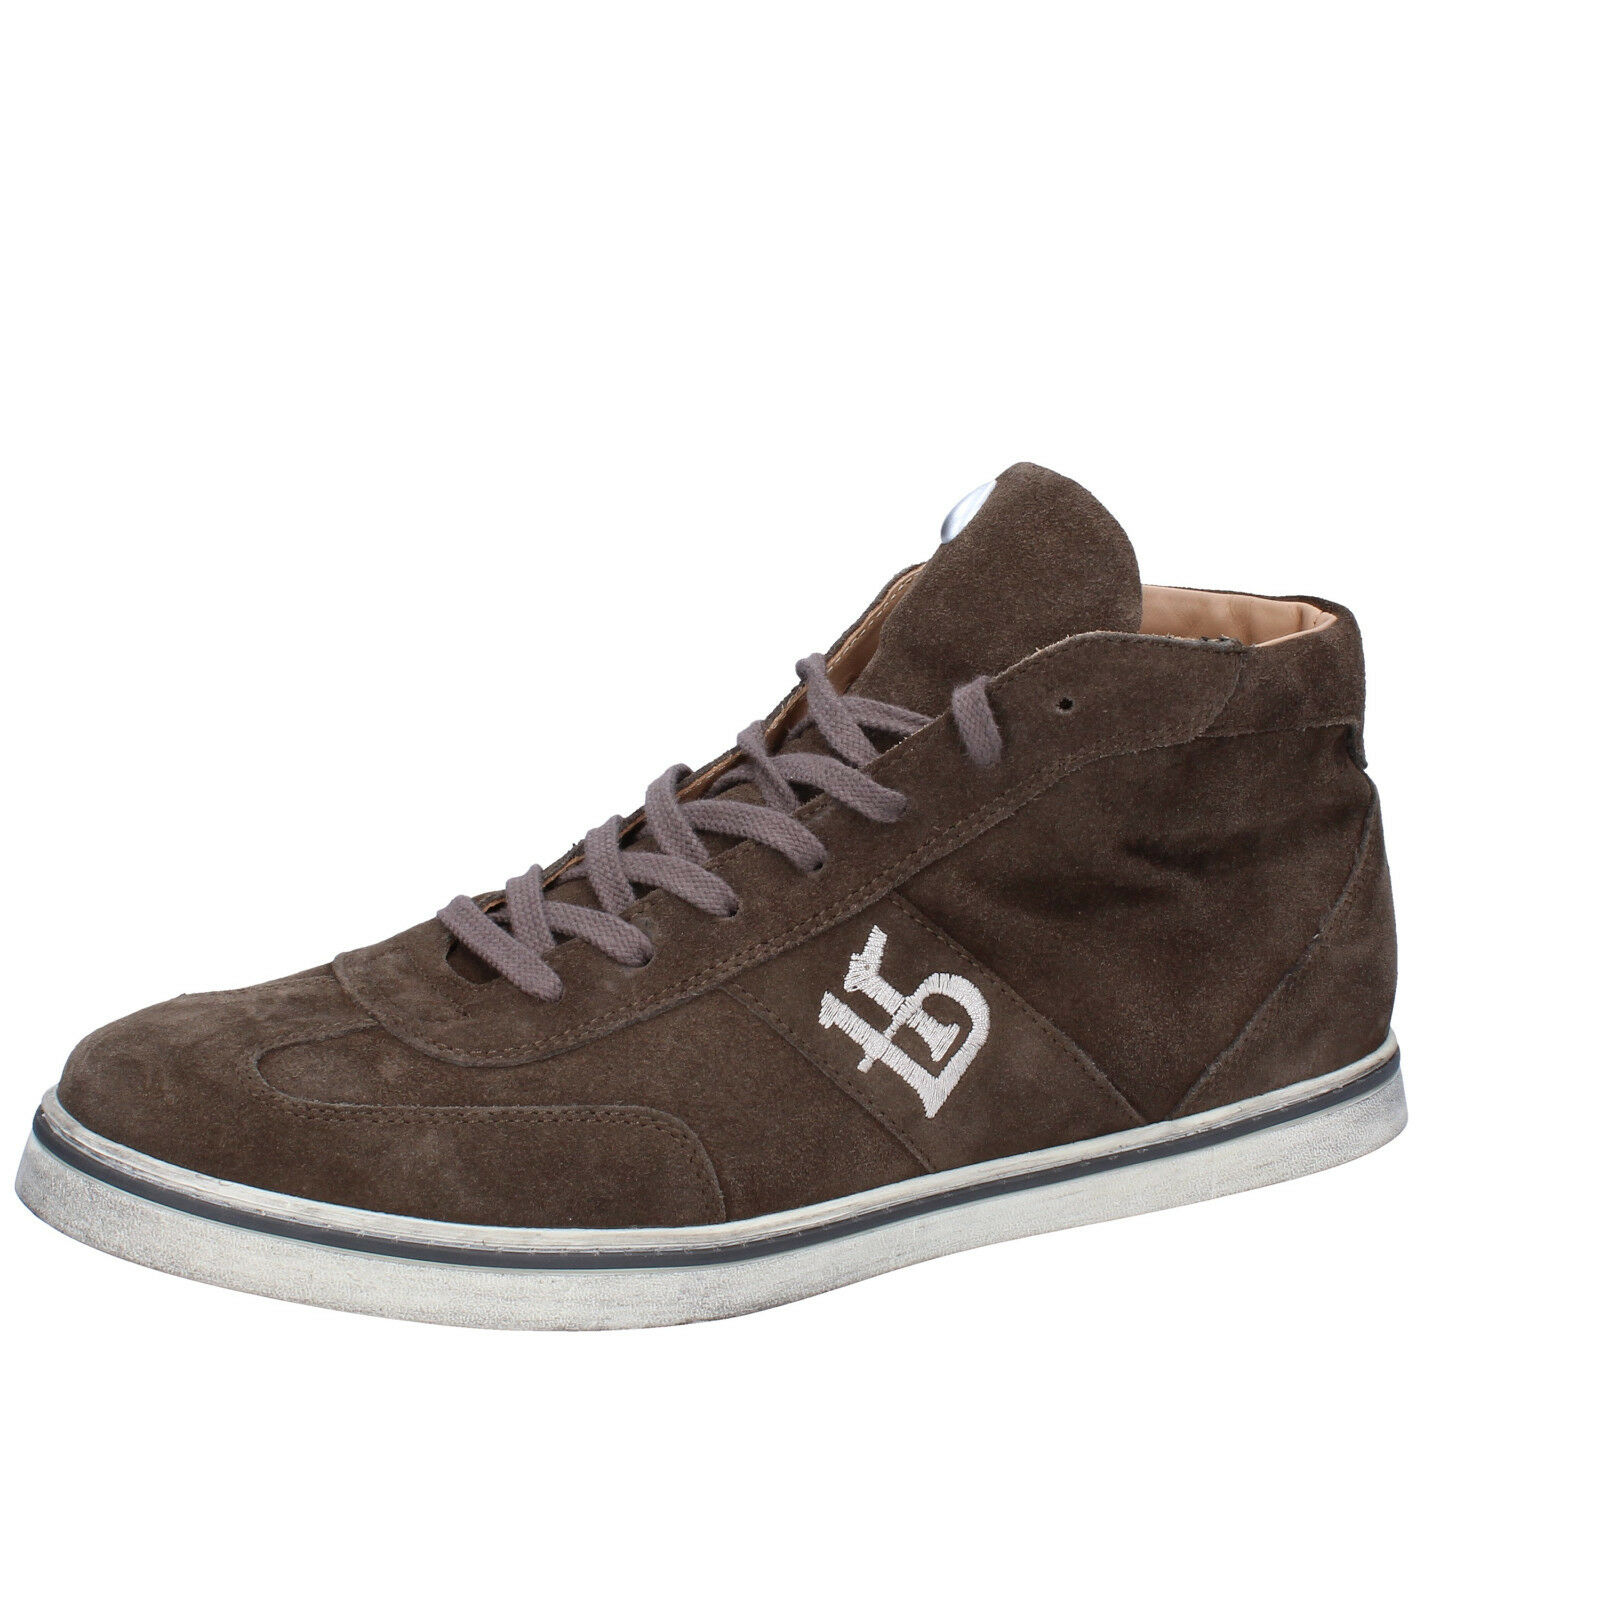 hommes chaussures BOTTICELLI LIMITED 11 (EU 44) sneakers brown suede AH749-D